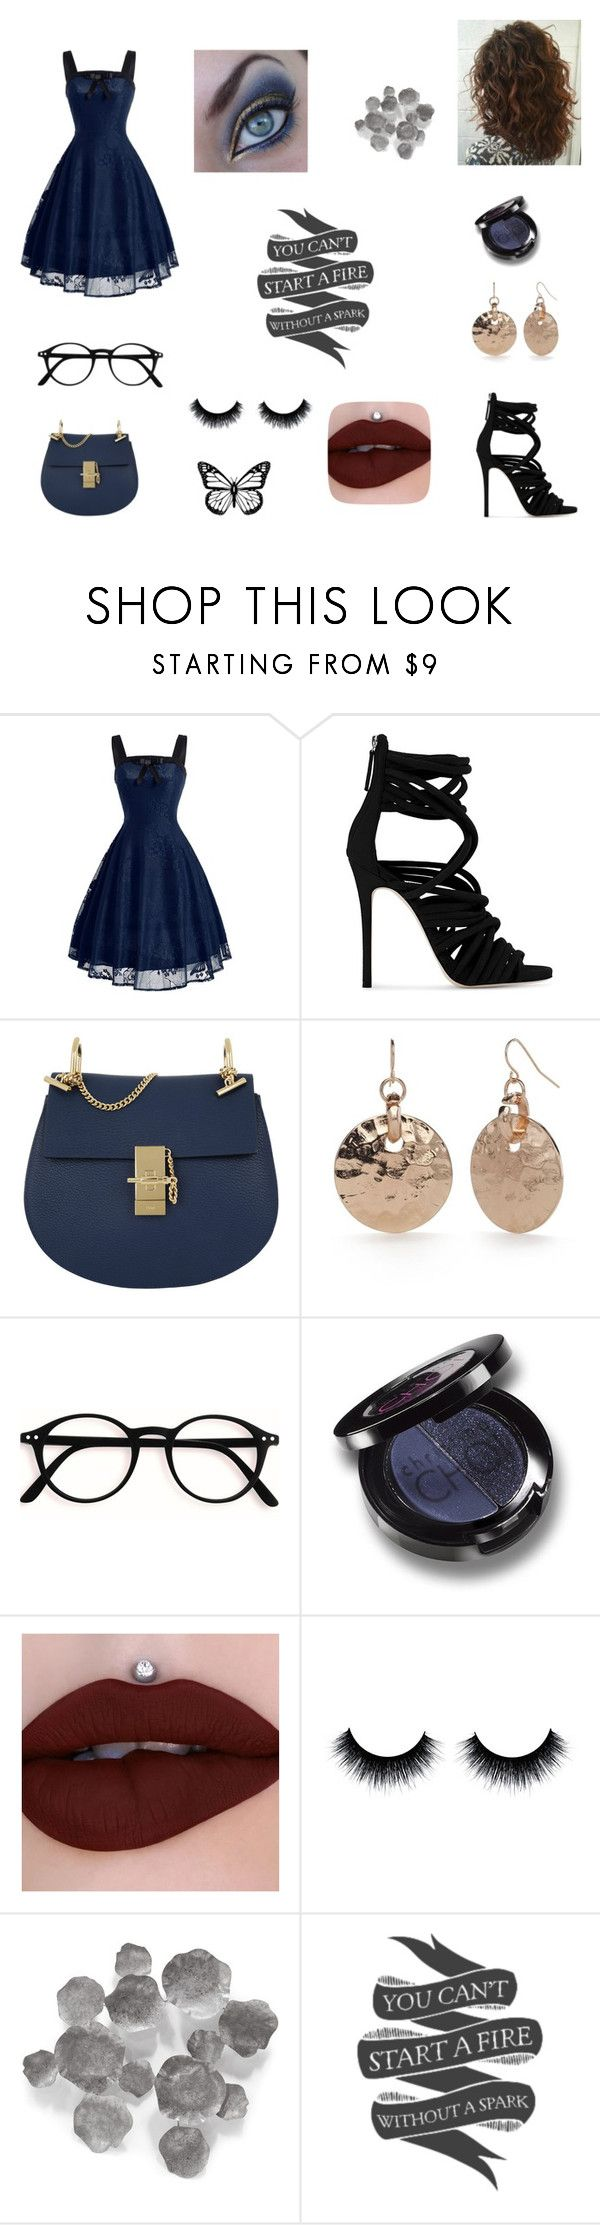 """""""You can't start a fire without a spark,"""" by writeitnow ❤ liked on Polyvore featuring beauty, Giuseppe Zanotti, Chloé, New Directions, Christina Choi Cosmetics, Palecek, Native State, gold, black and Blue"""